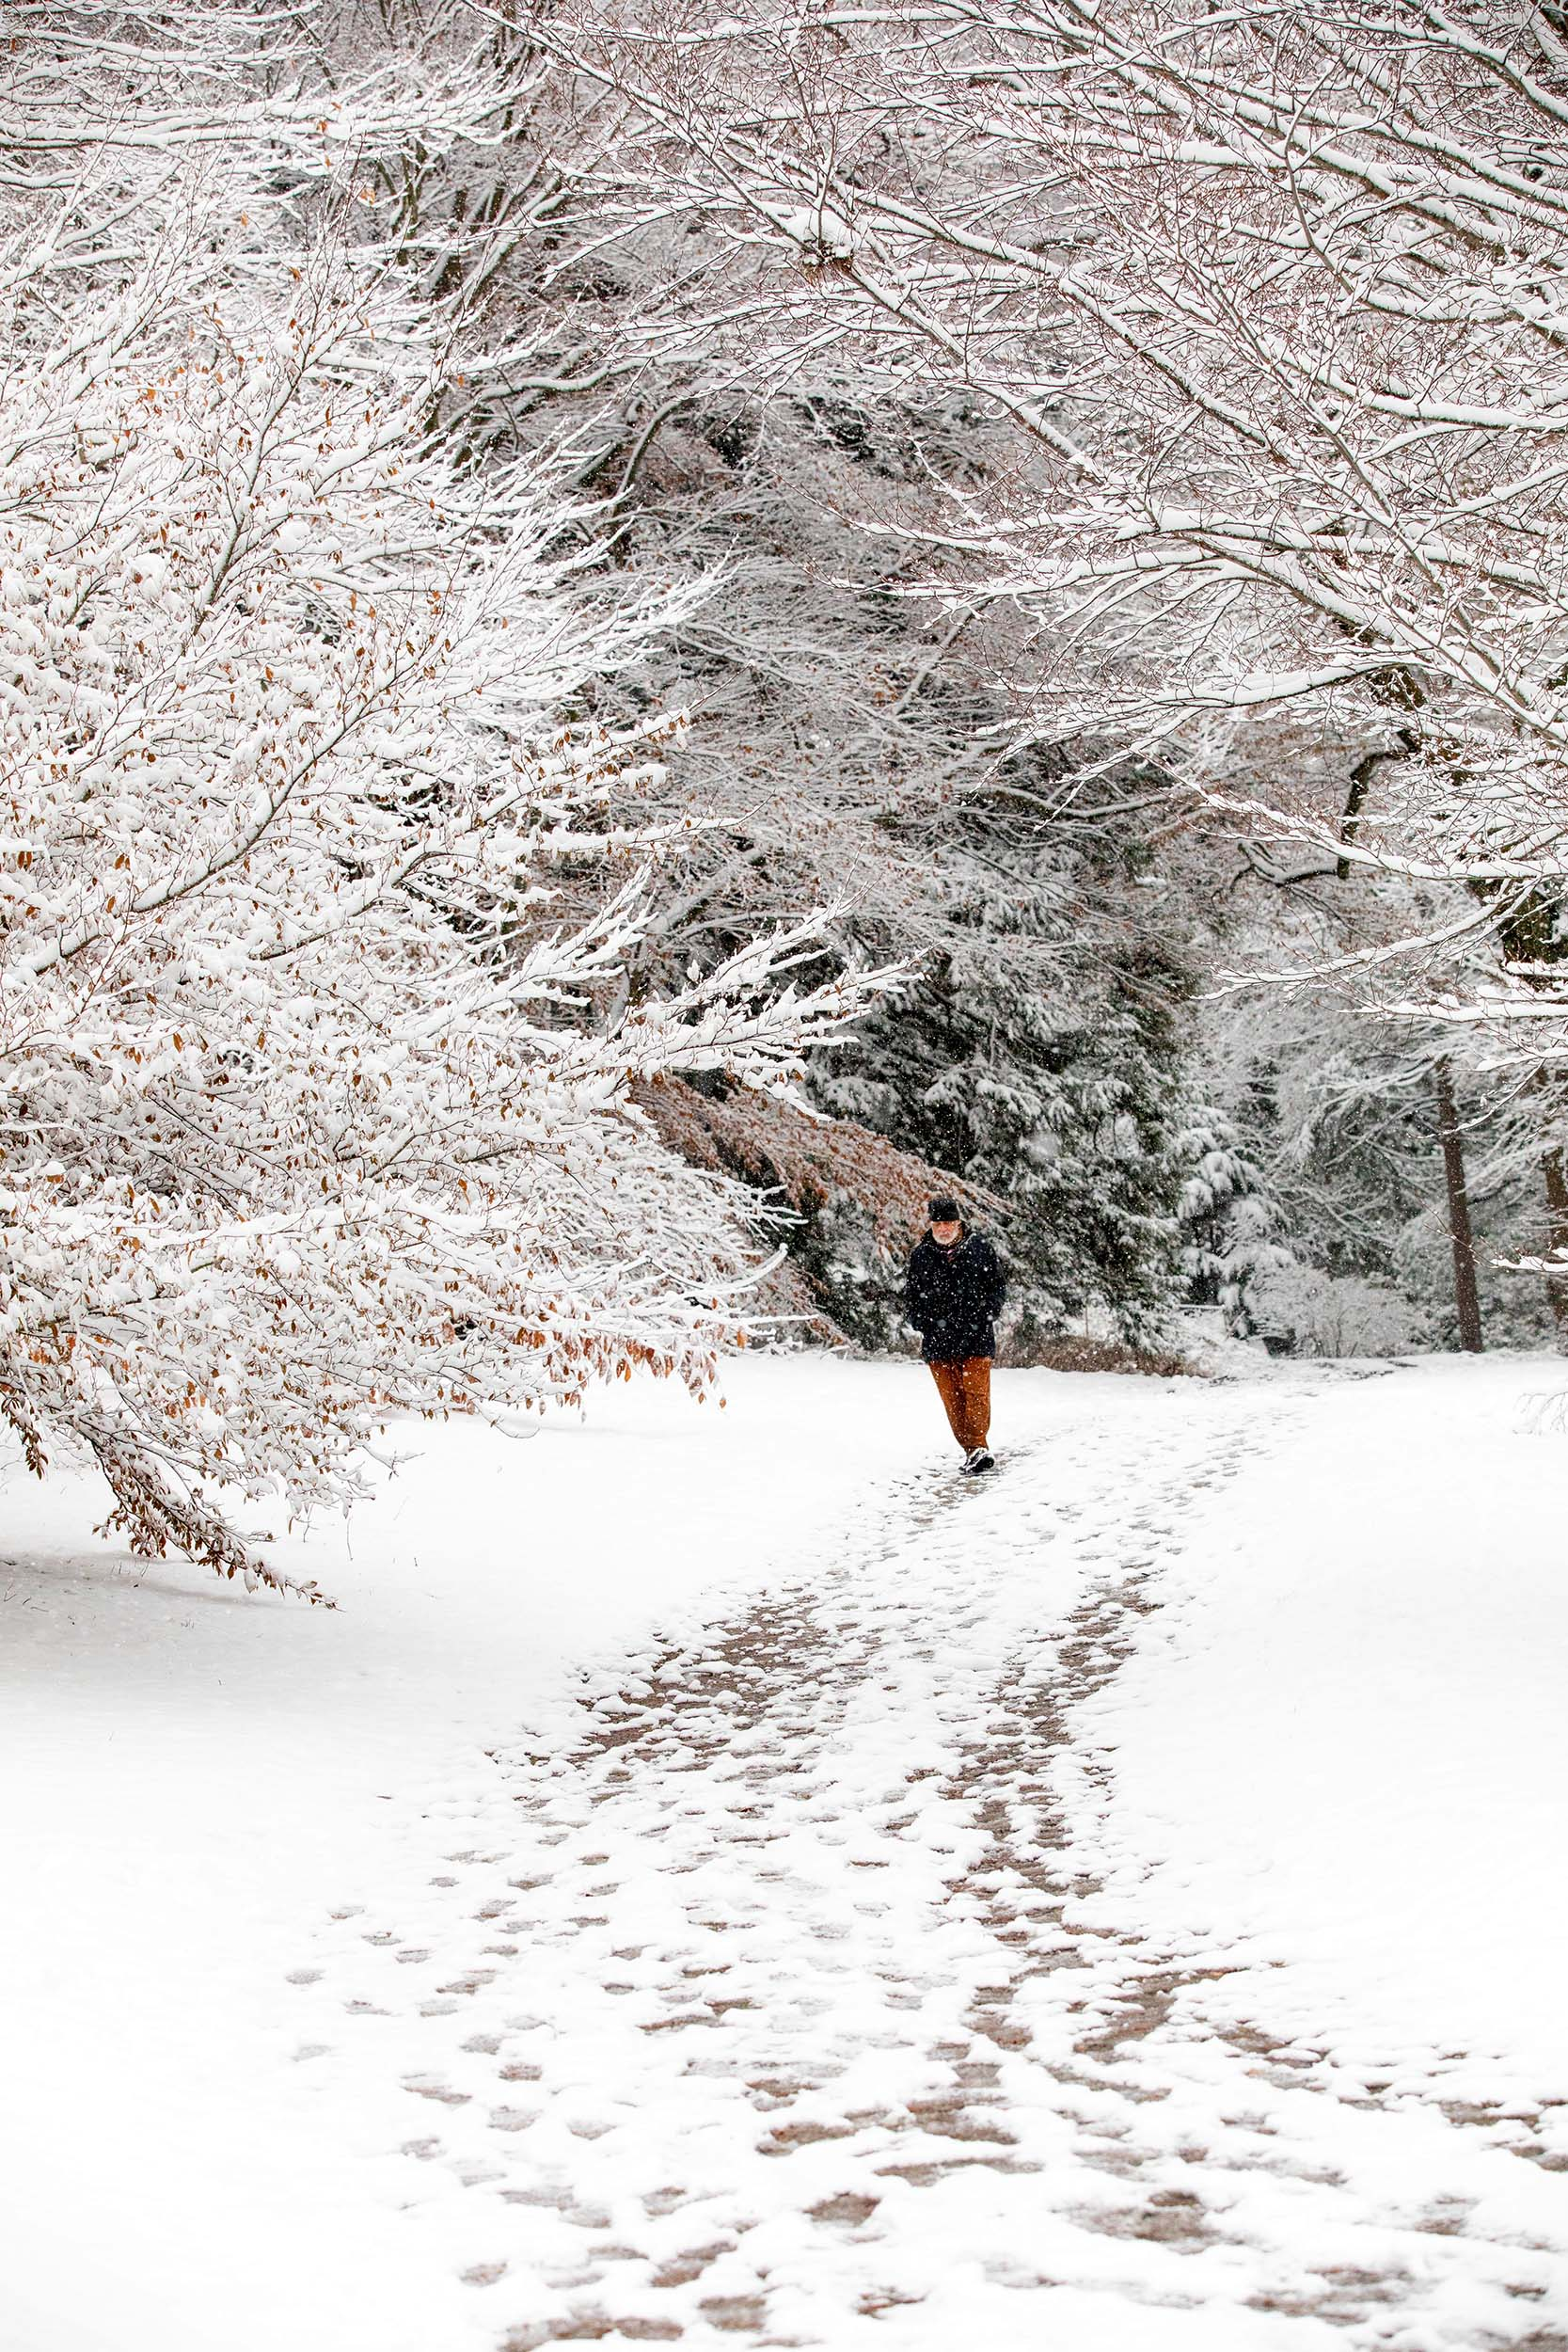 Anthony Apesos of Jamaica Plain walks along a snowy trail.